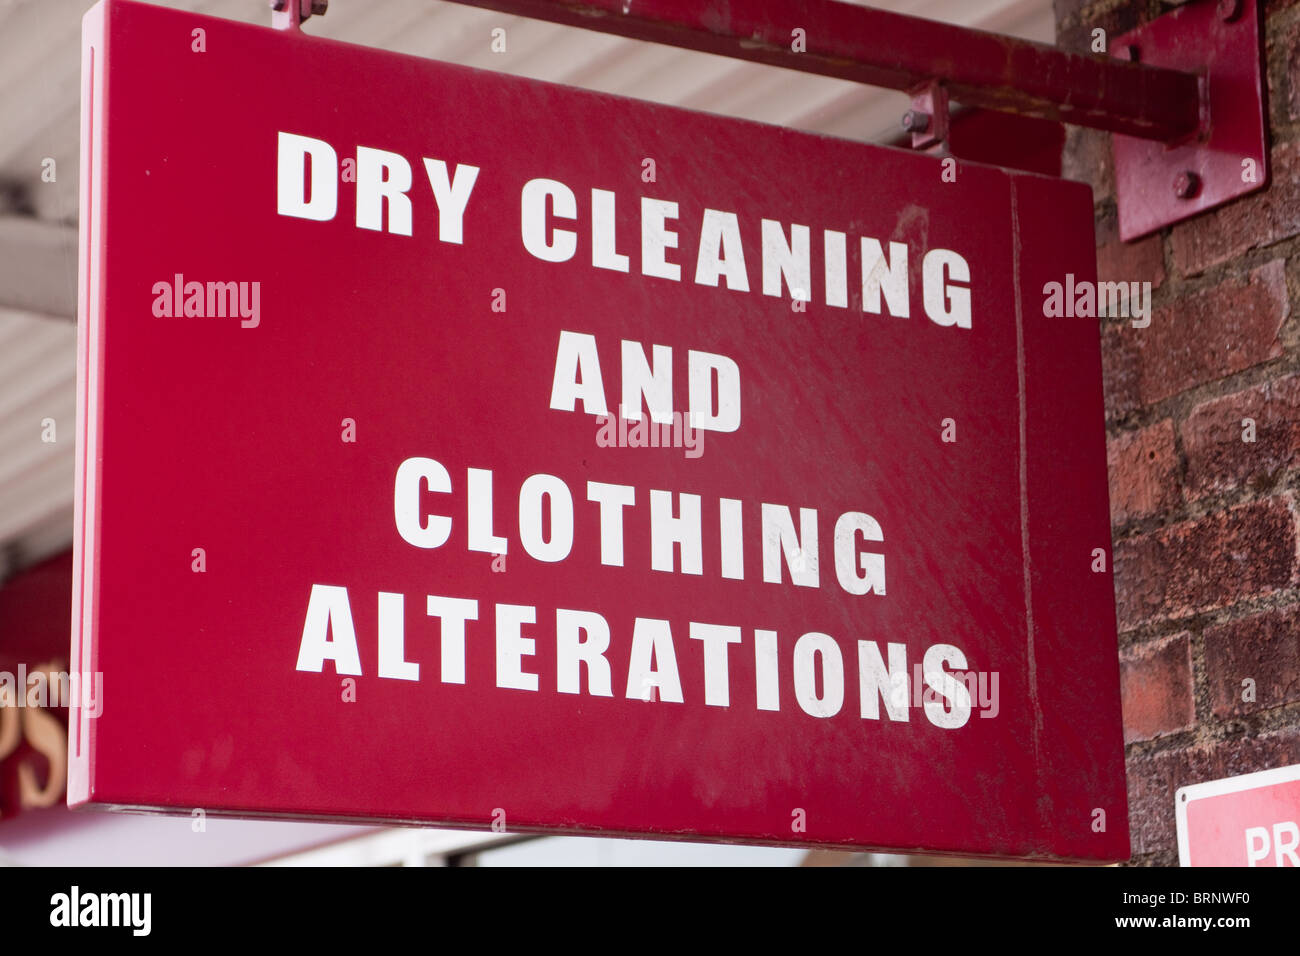 Dry Cleaning and Clothing Alterations sign - Stock Image